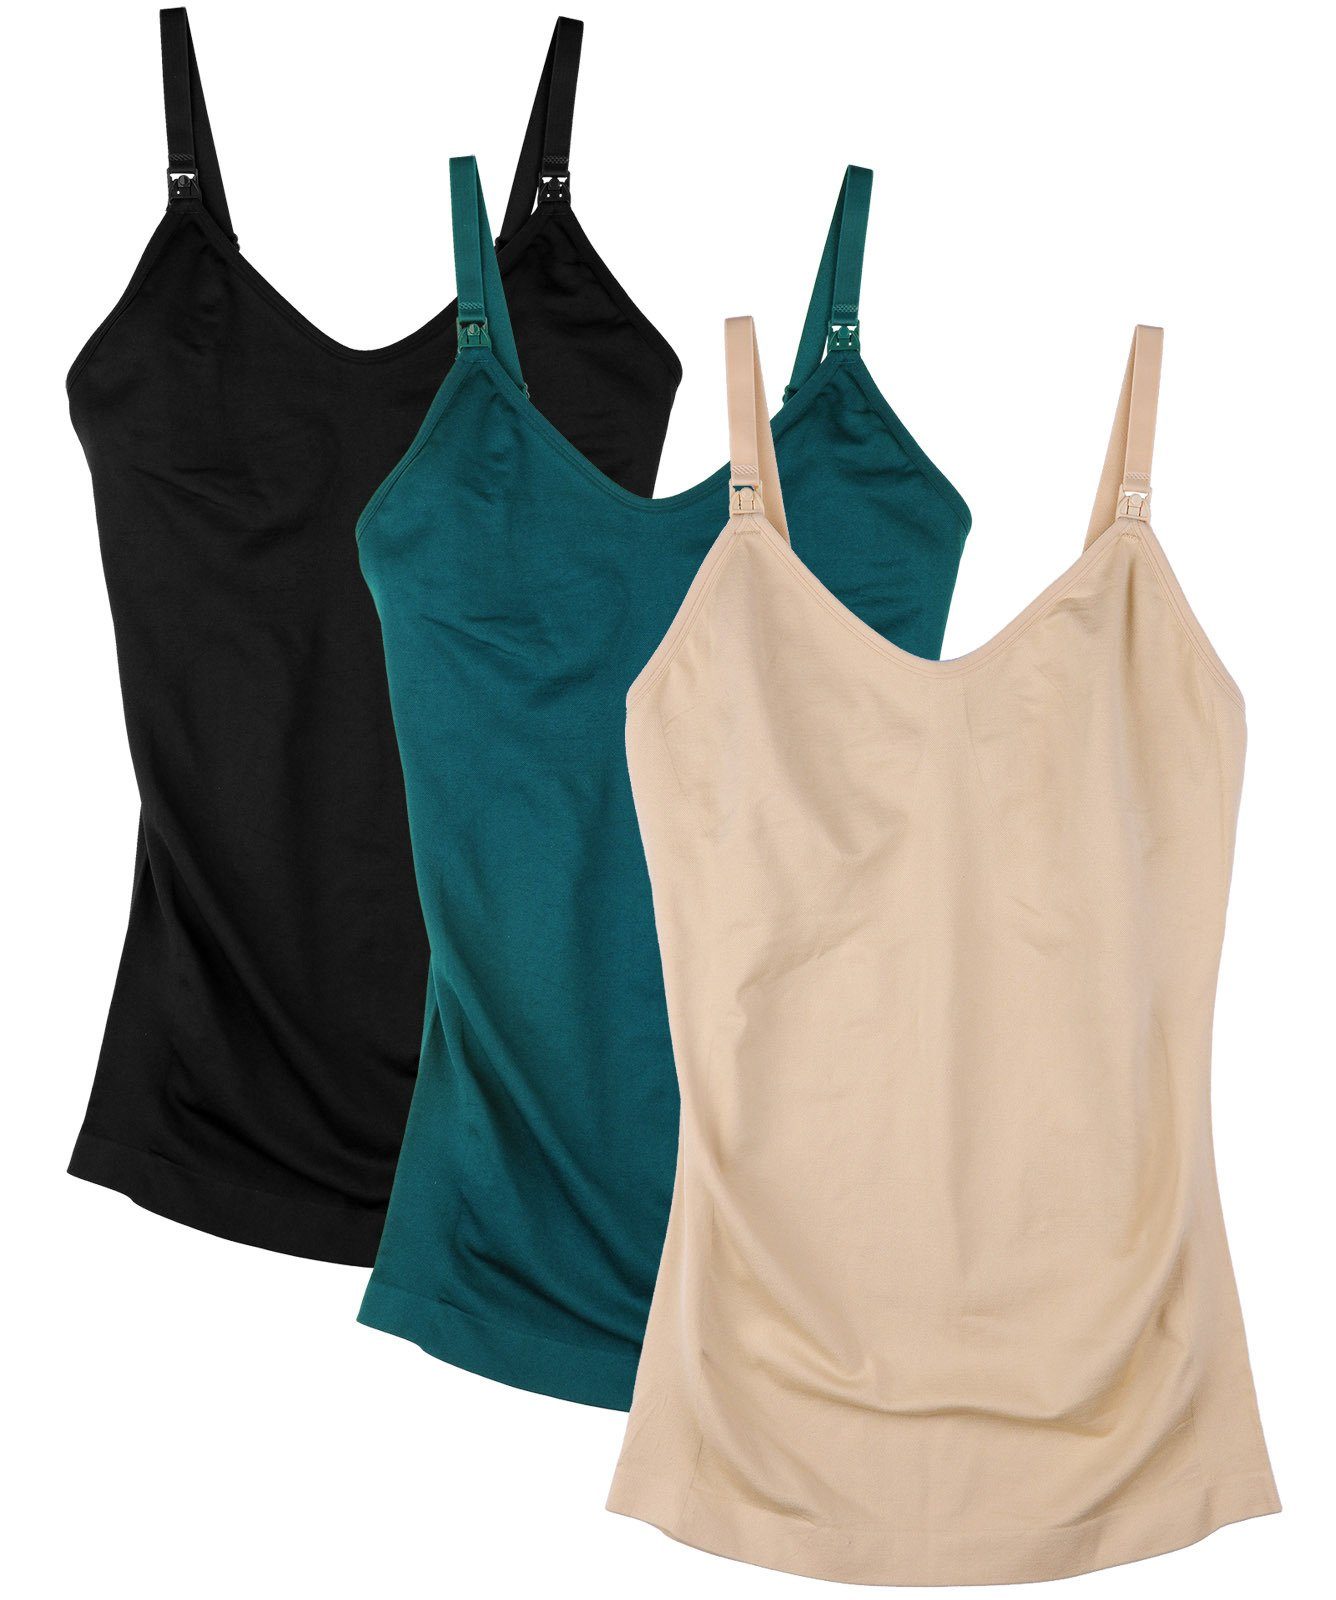 Daisity Womens Wirefree Nursing Tank Seamless Maternity Cami for Breastfeeding Color Black Green Beige Pack of 3 Size XL